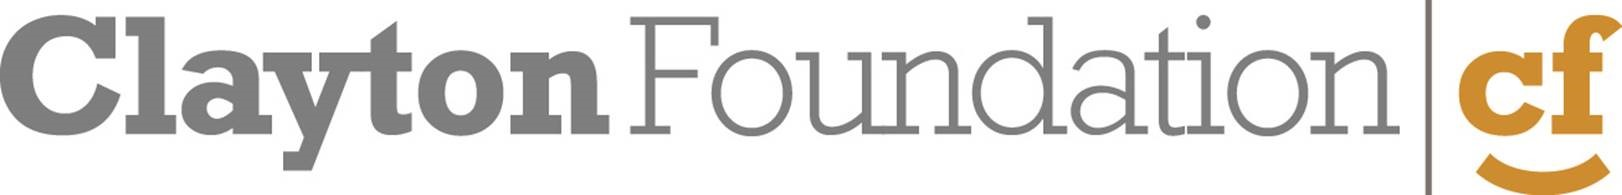 claytonfoundation_logo